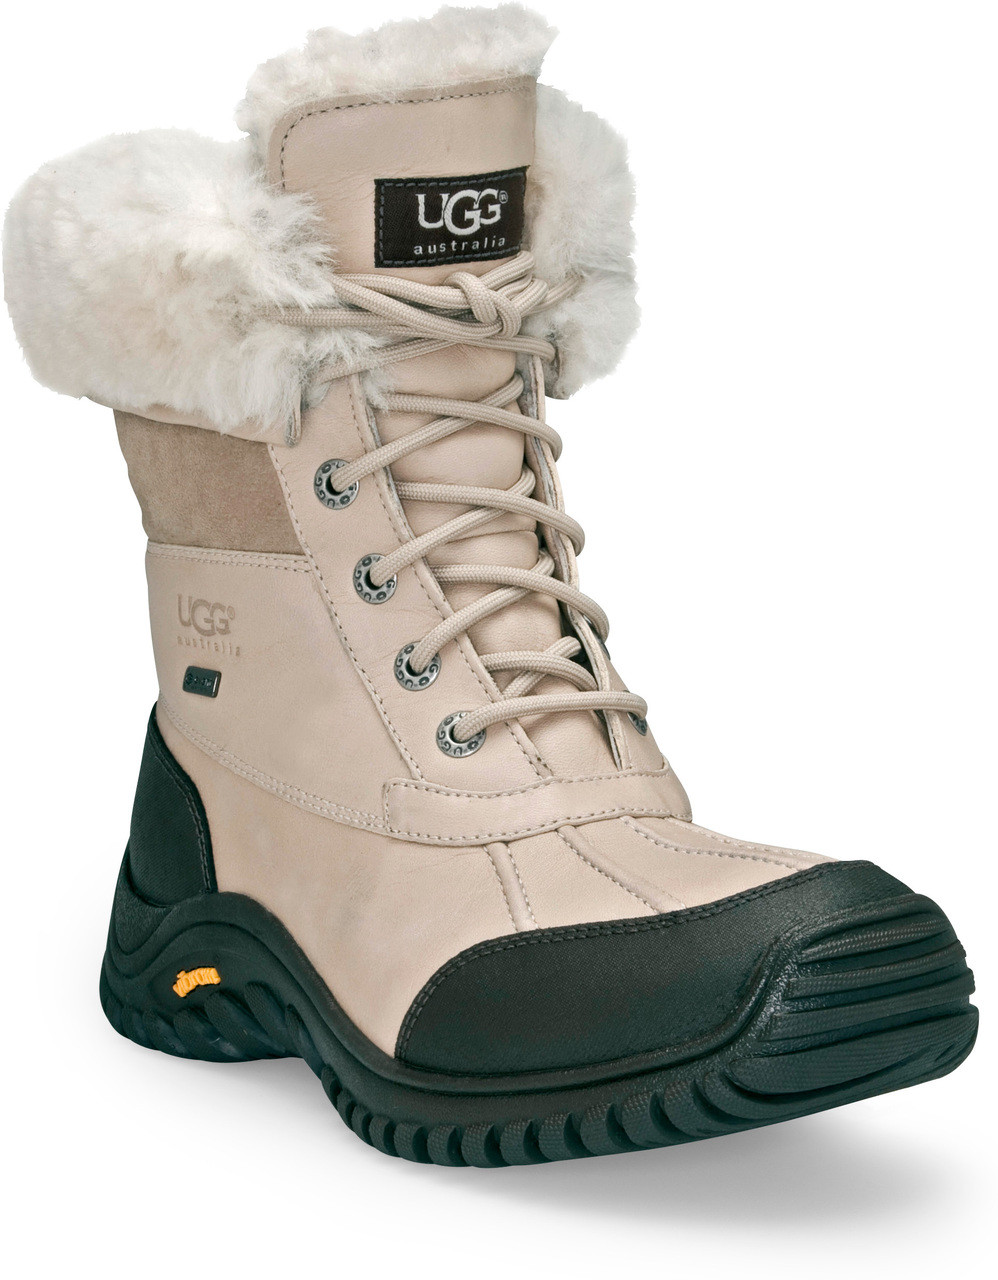 ... Boots; UGG Women's Adirondack Boot II. Black. Black; Black/Grey;  Charcoal; Chocolate; Obsidian; Otter; Sand; Stout; White